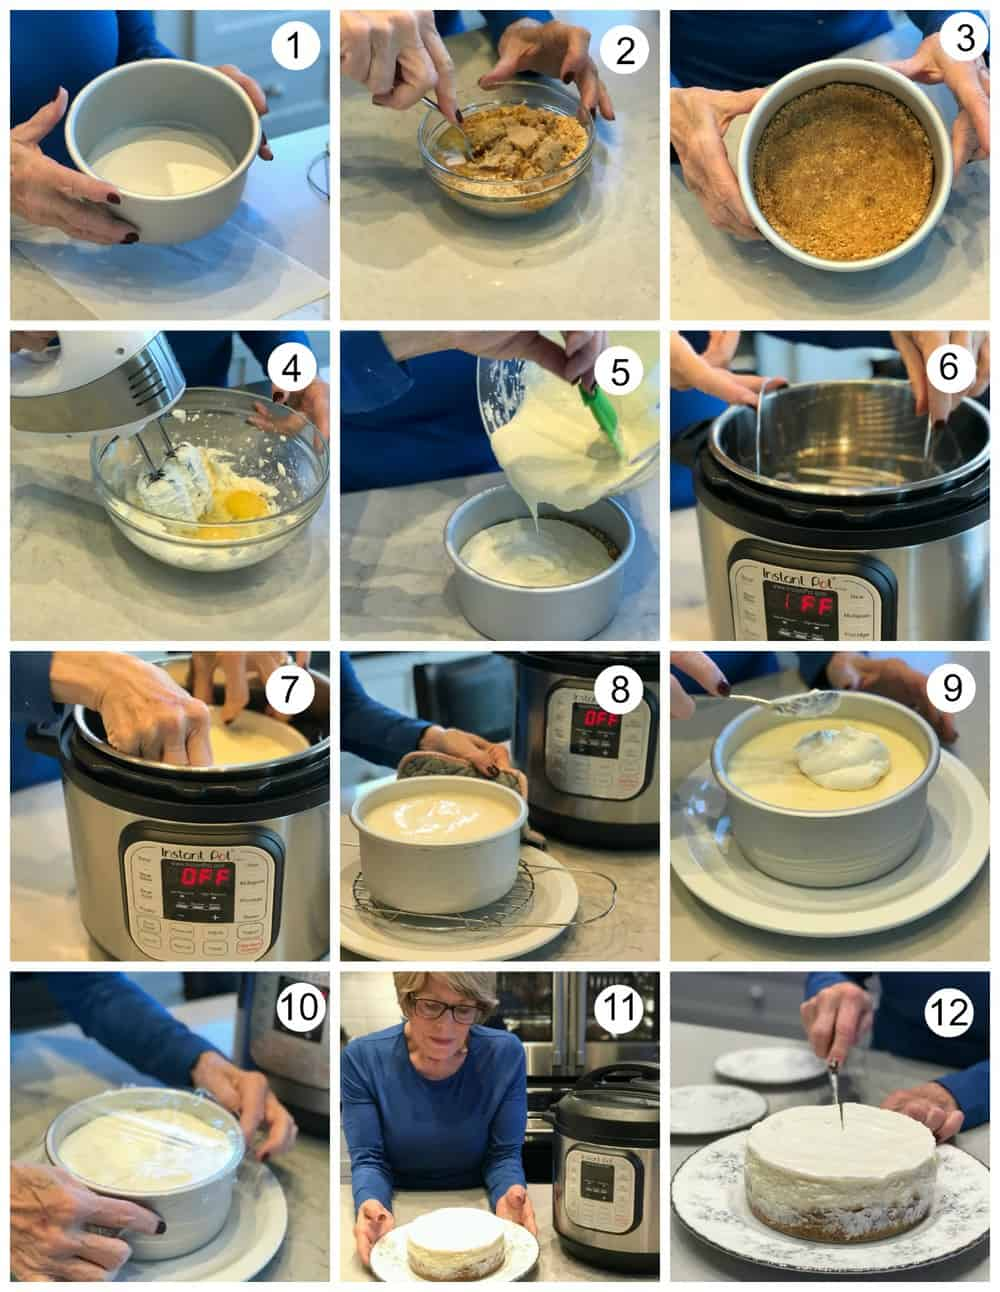 images showing steps to make Instant Pot Cheesecake